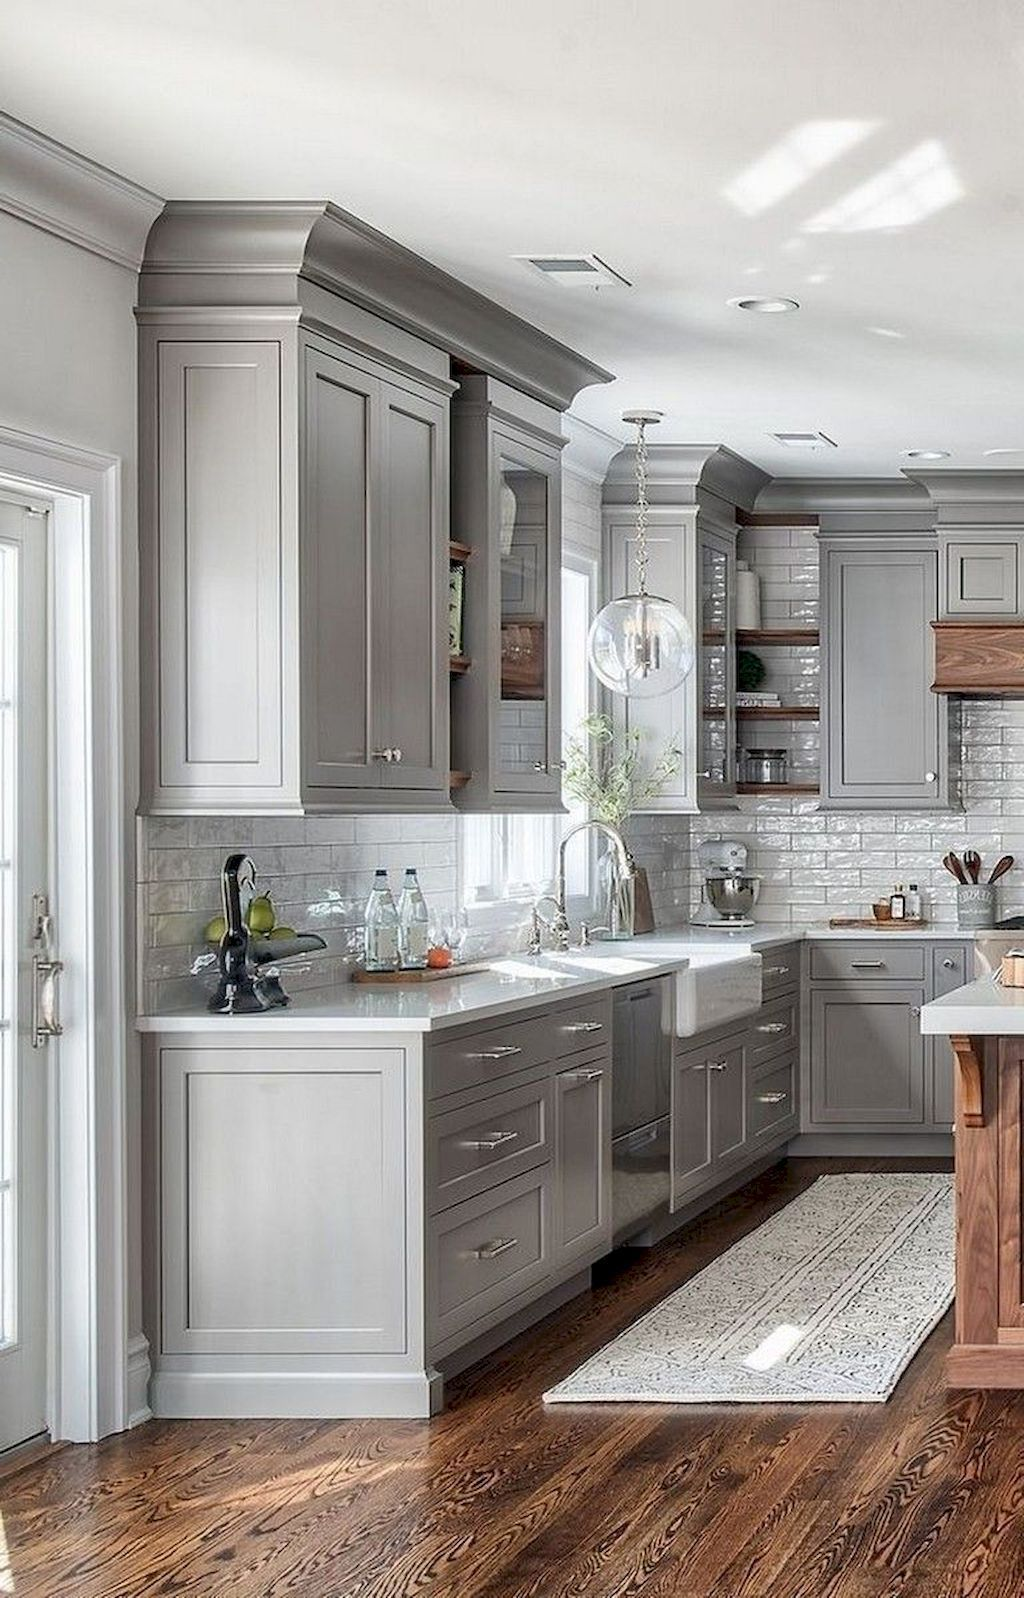 Do You Need Some Ideas To Start Decorating Your Kitchen There You Go Http Modern Kitchen Cabinet Design Kitchen Backsplash Designs Kitchen Cabinet Design